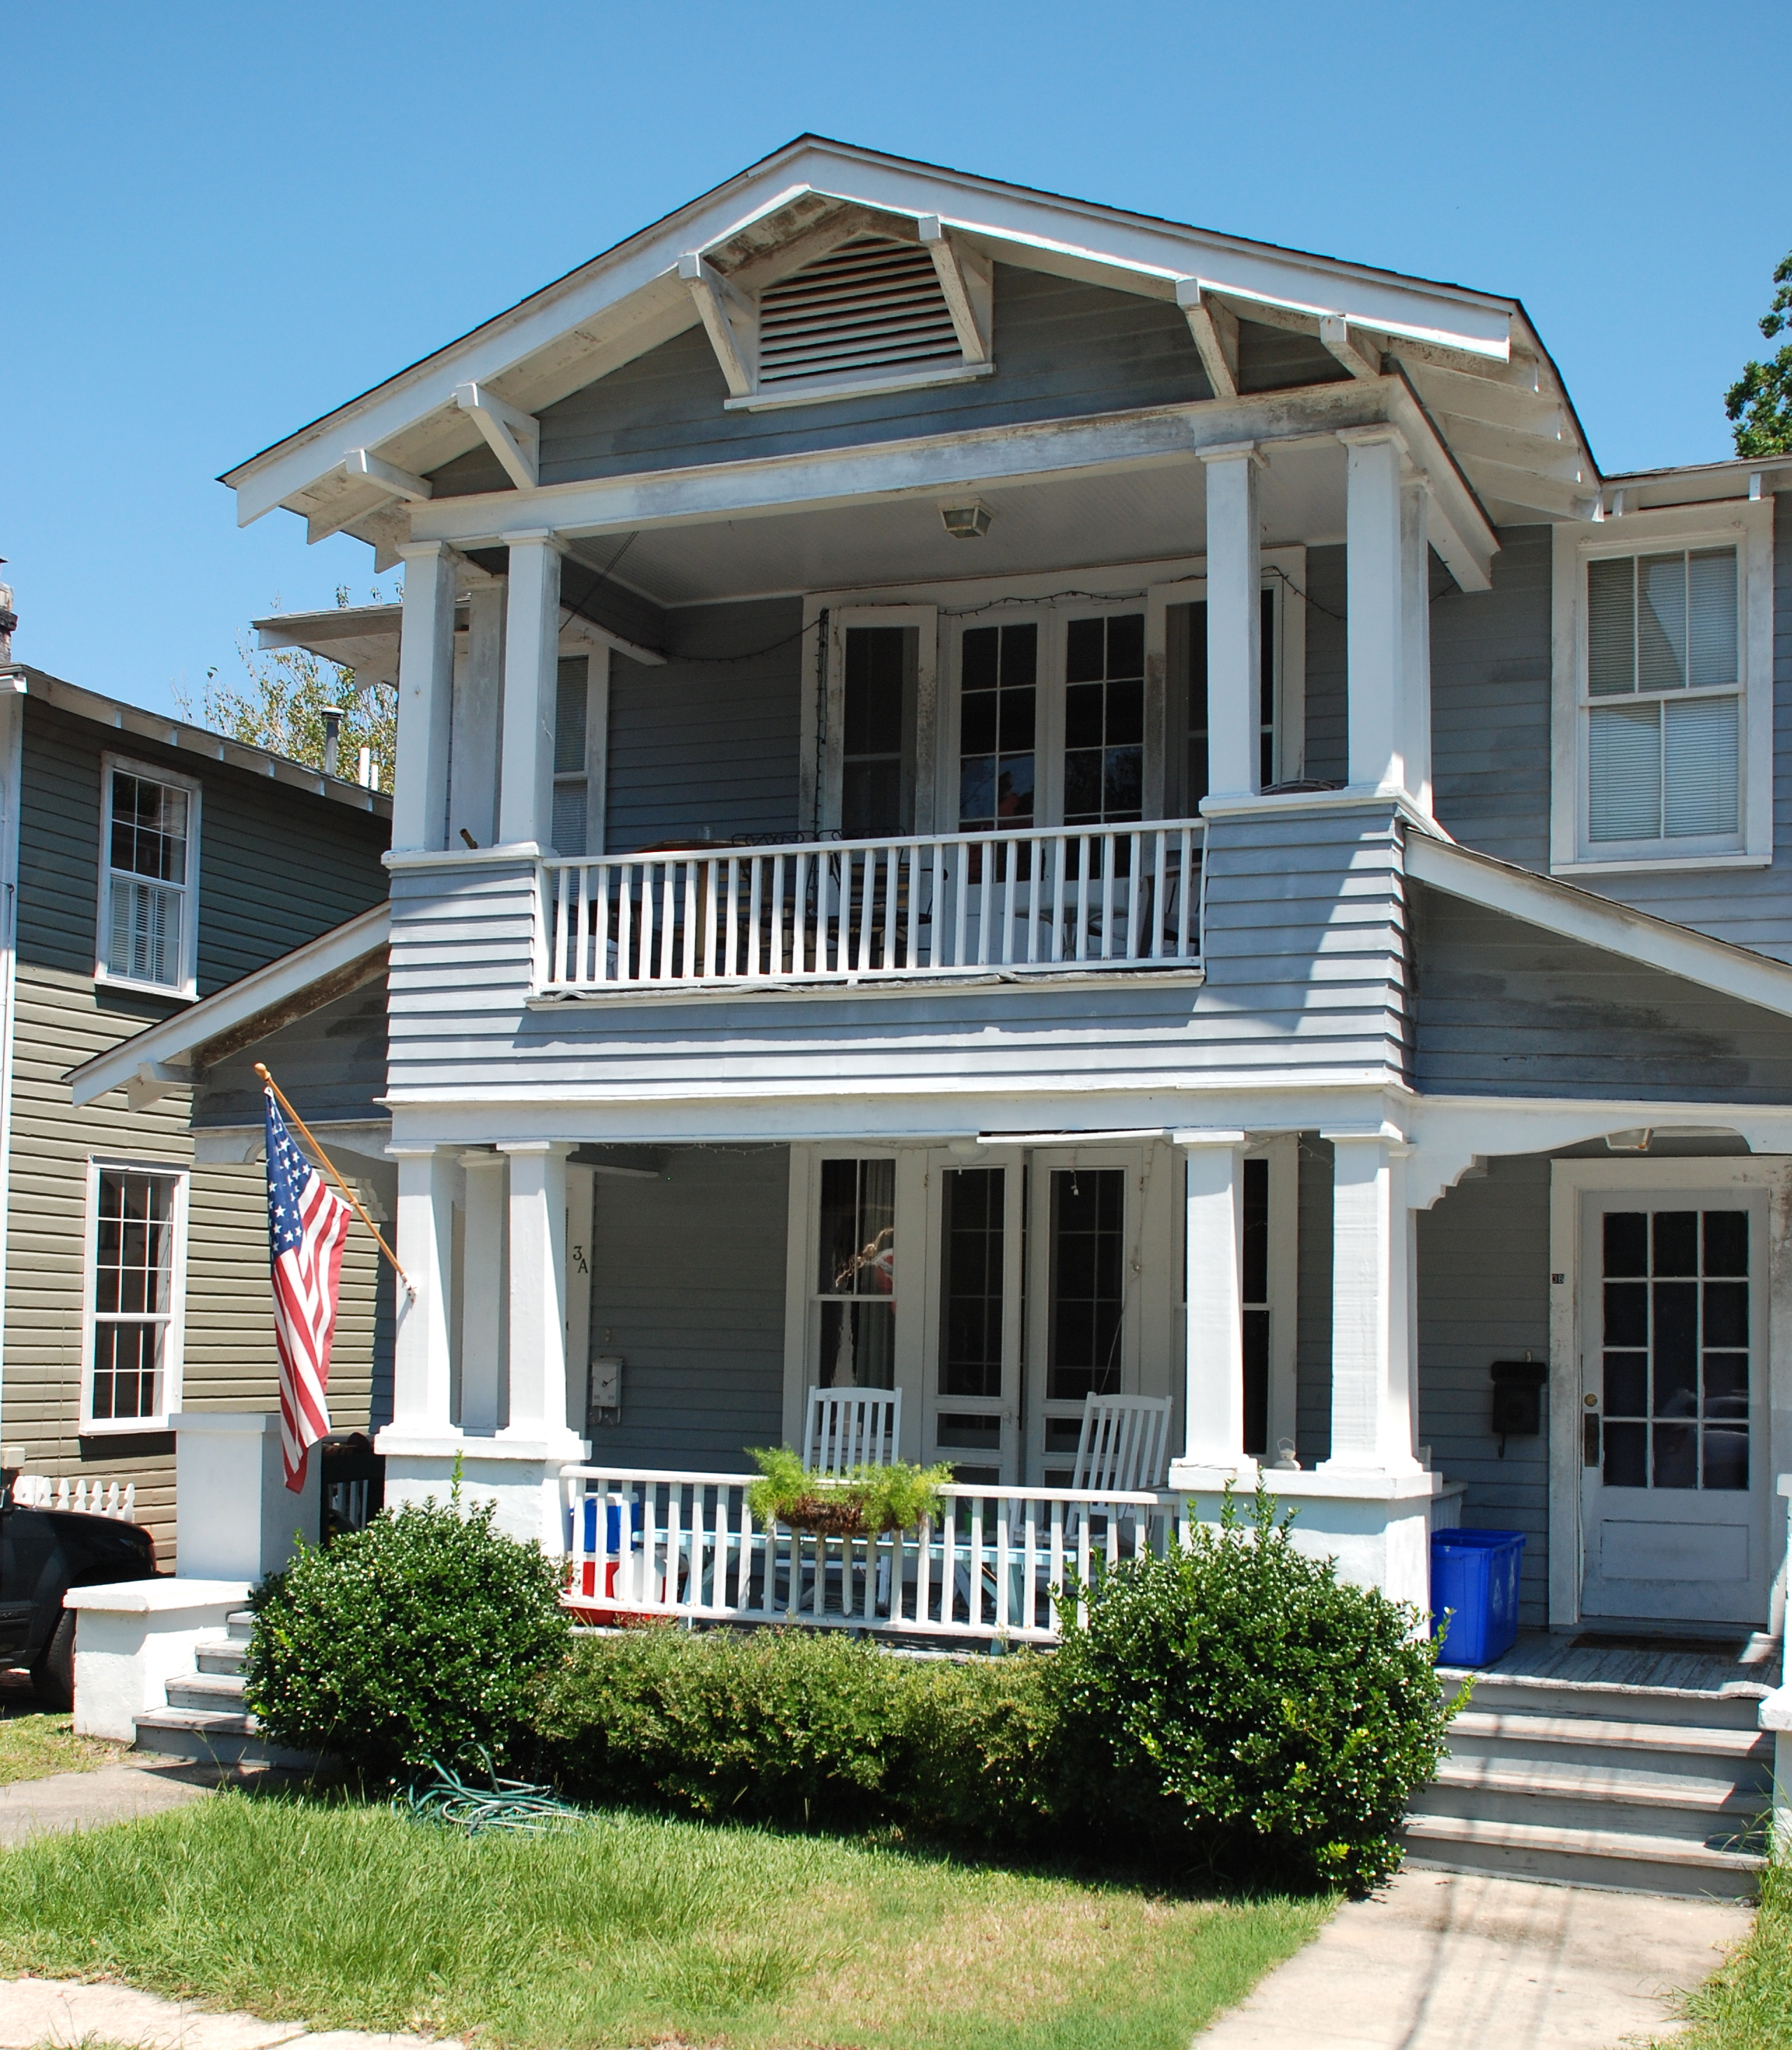 The Palms Apartments Charleston Sc: The Estate Of Things